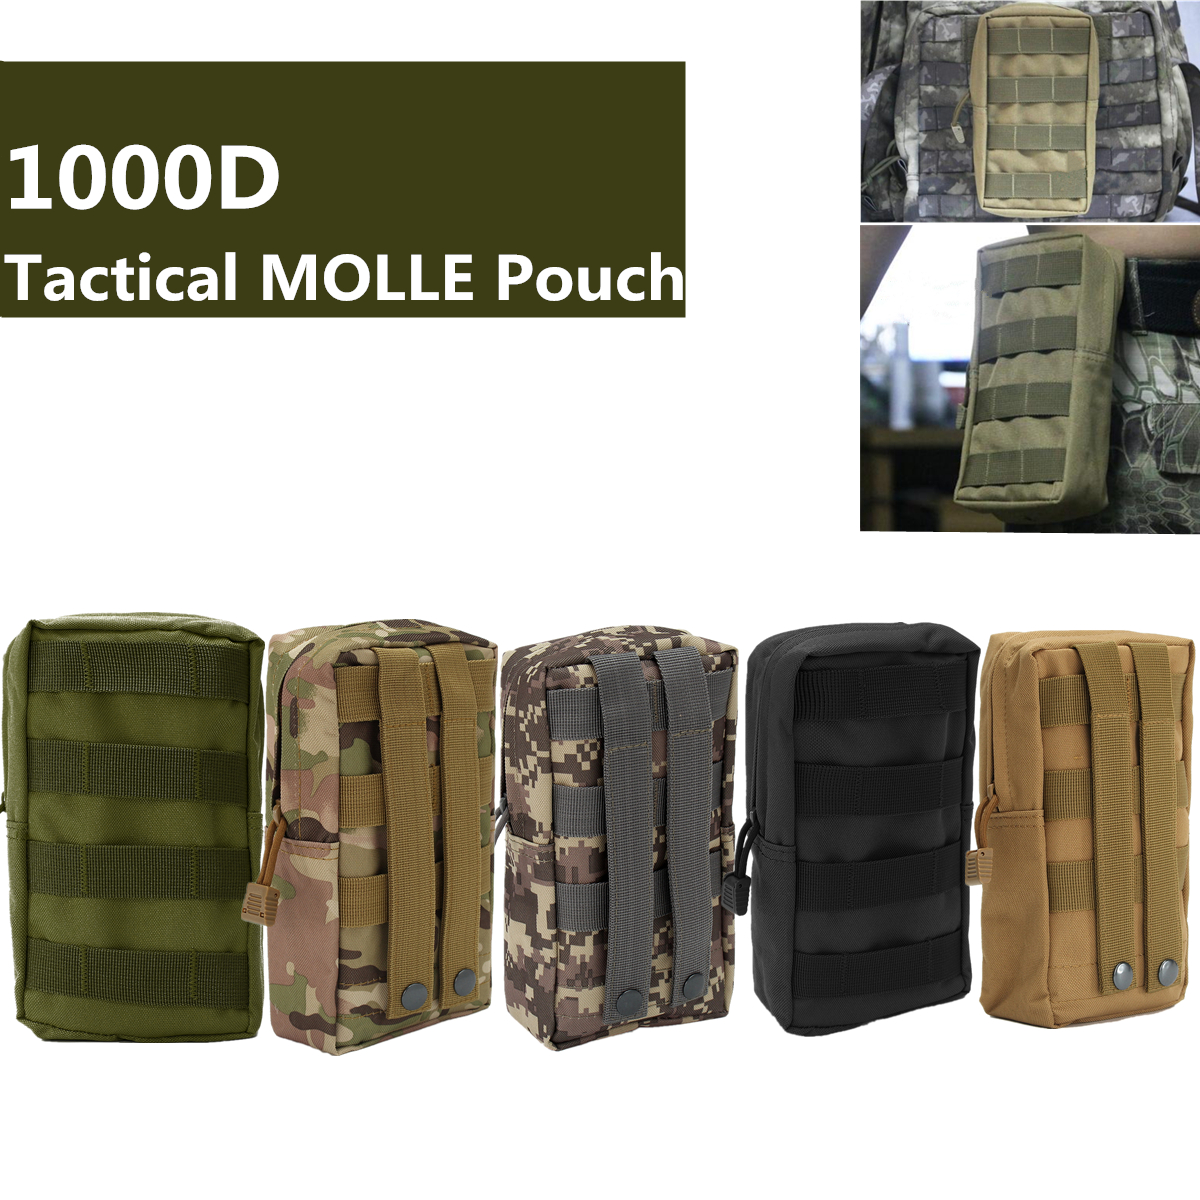 Outdoor Tactical Portable Storage Bag Pouch For Smartphone